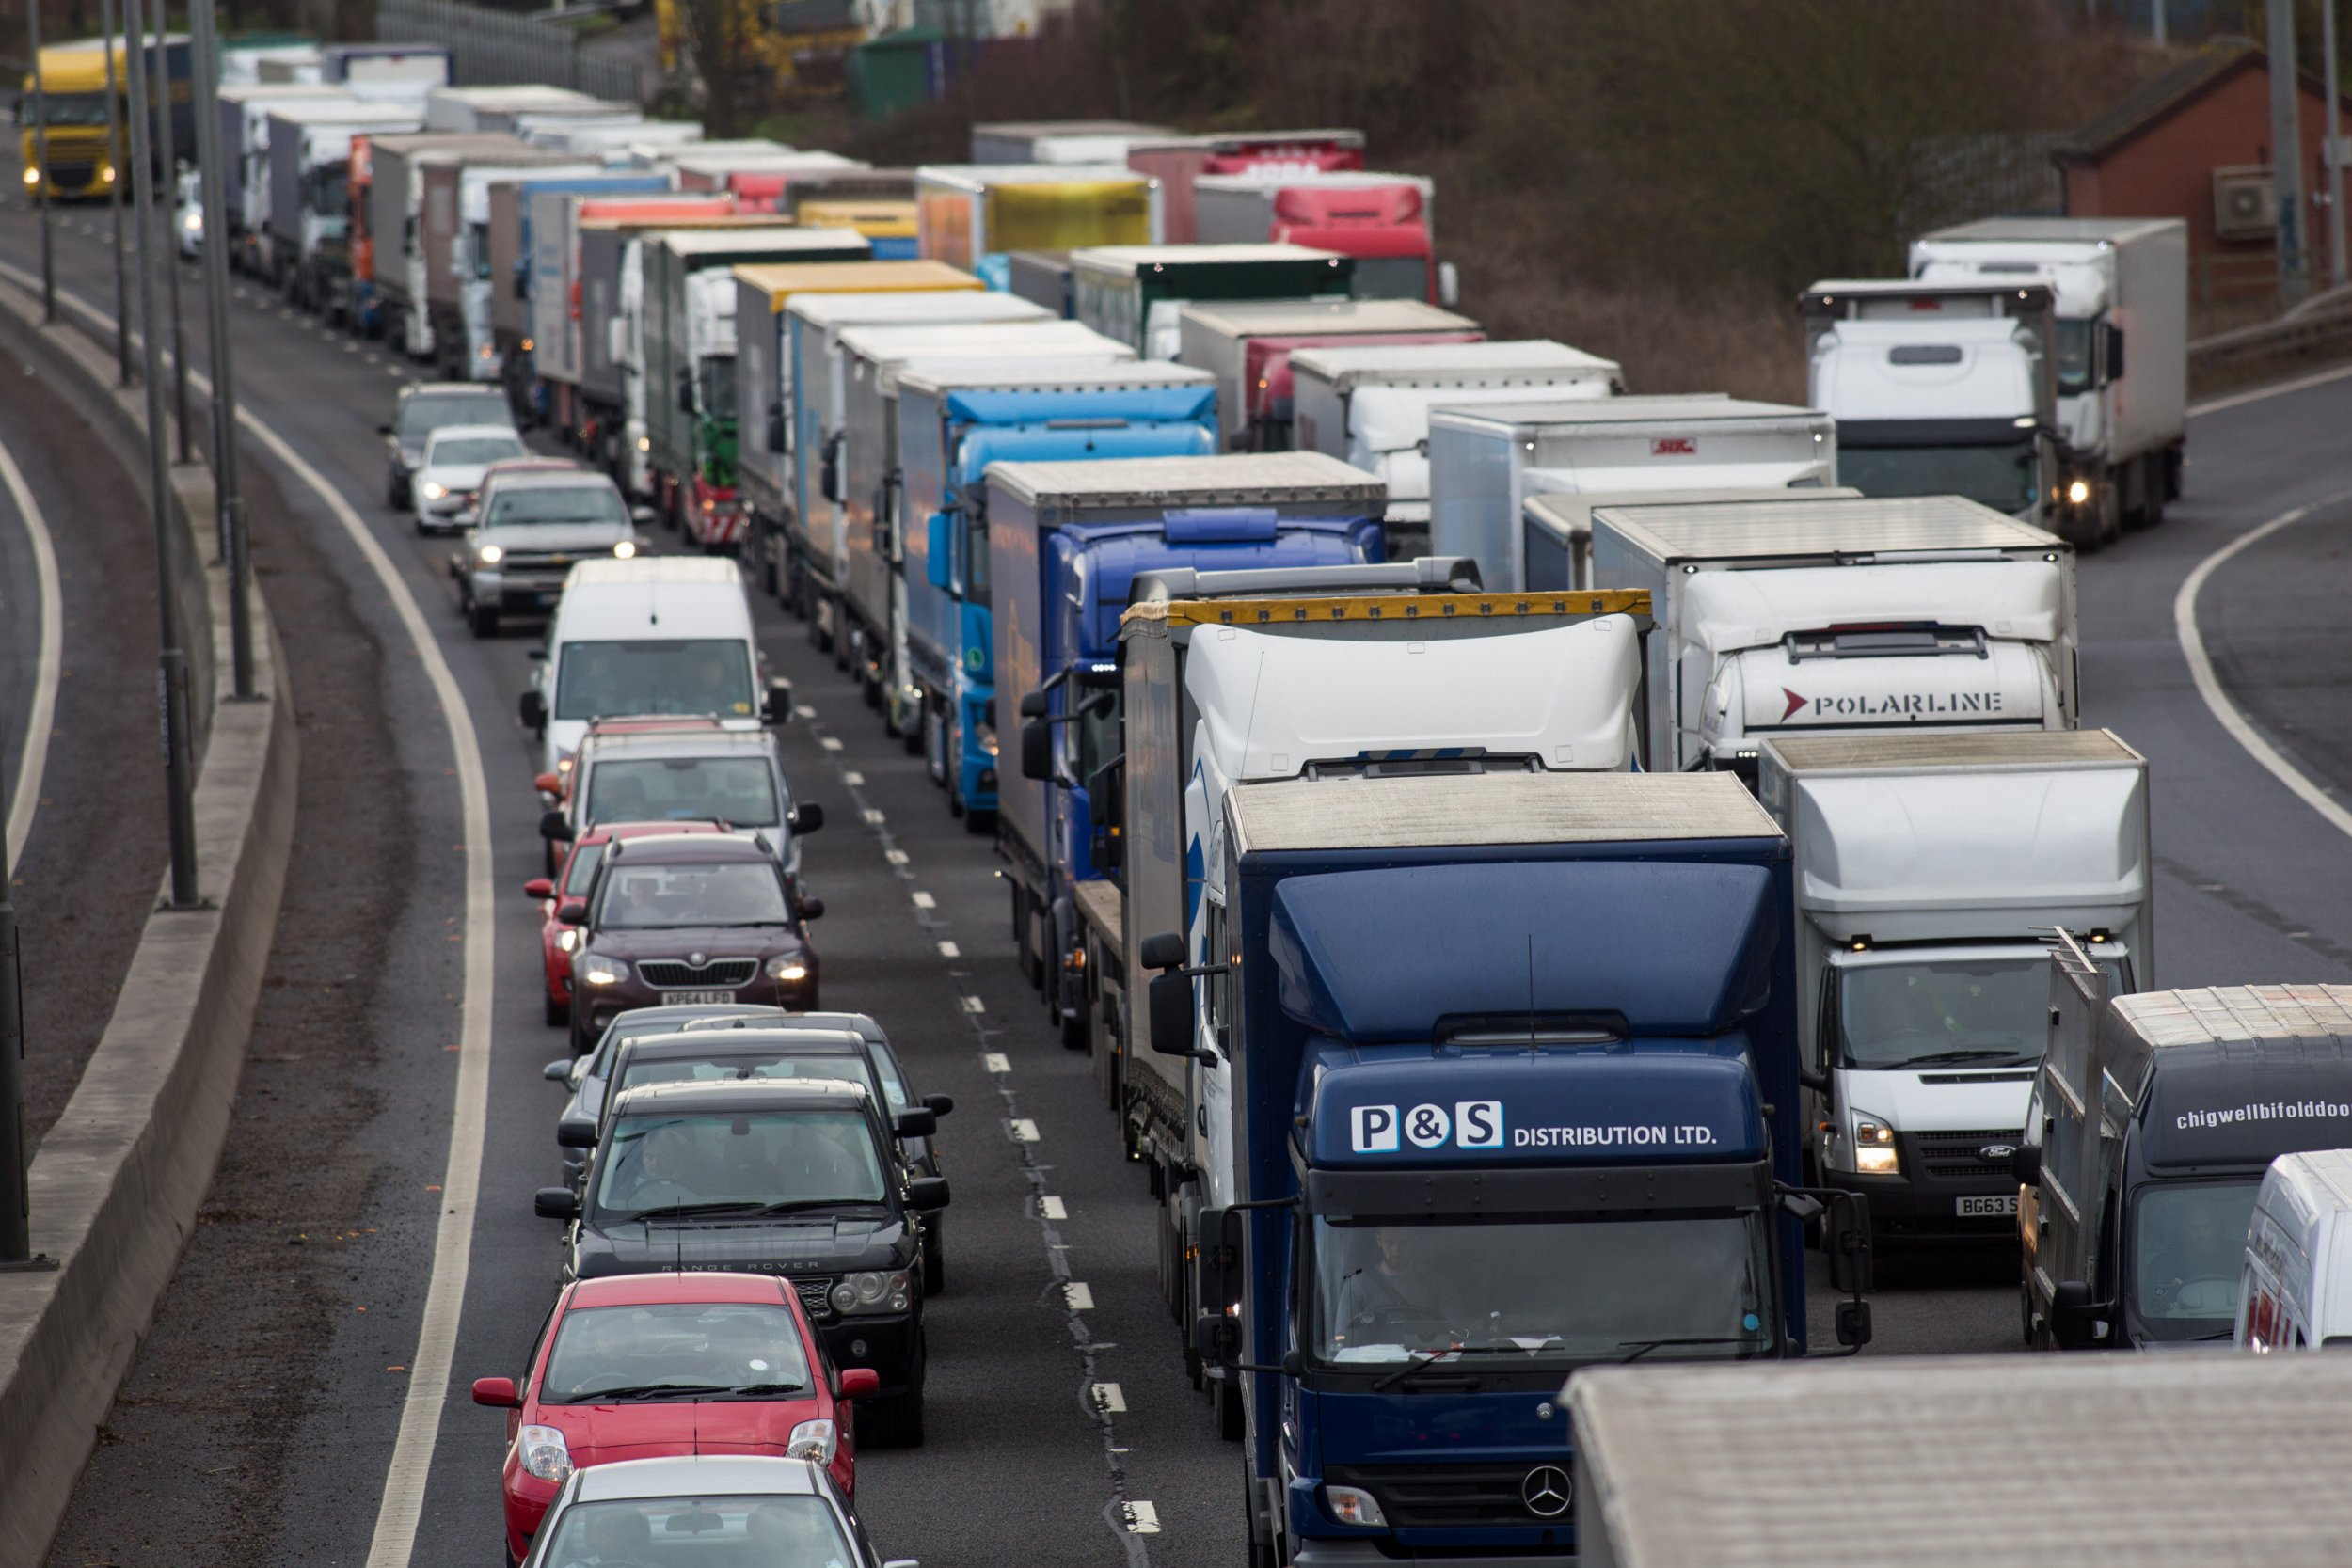 Lorries and cars caught in heavy traffic northbound at the junction 16 turn off on the M1. The M1 has been closed from junctions 16-18 following a body being found at roughly 3am. January 10, 2017.  A body has been found in the middle of a motorway, sparking an intense police investigation.  See NTI story NTIBODY.  Northamptonshire Police have now closed off a stretch of the M1 after finding the body on the motorway overnight.  A police spokesperson said the M1ís closure came ìfollowing the discovery of a body in roadî.  The motorwayís northbound carriageway was closed at about 3am, Tuesday, January 10, from junctions 16 to 17.